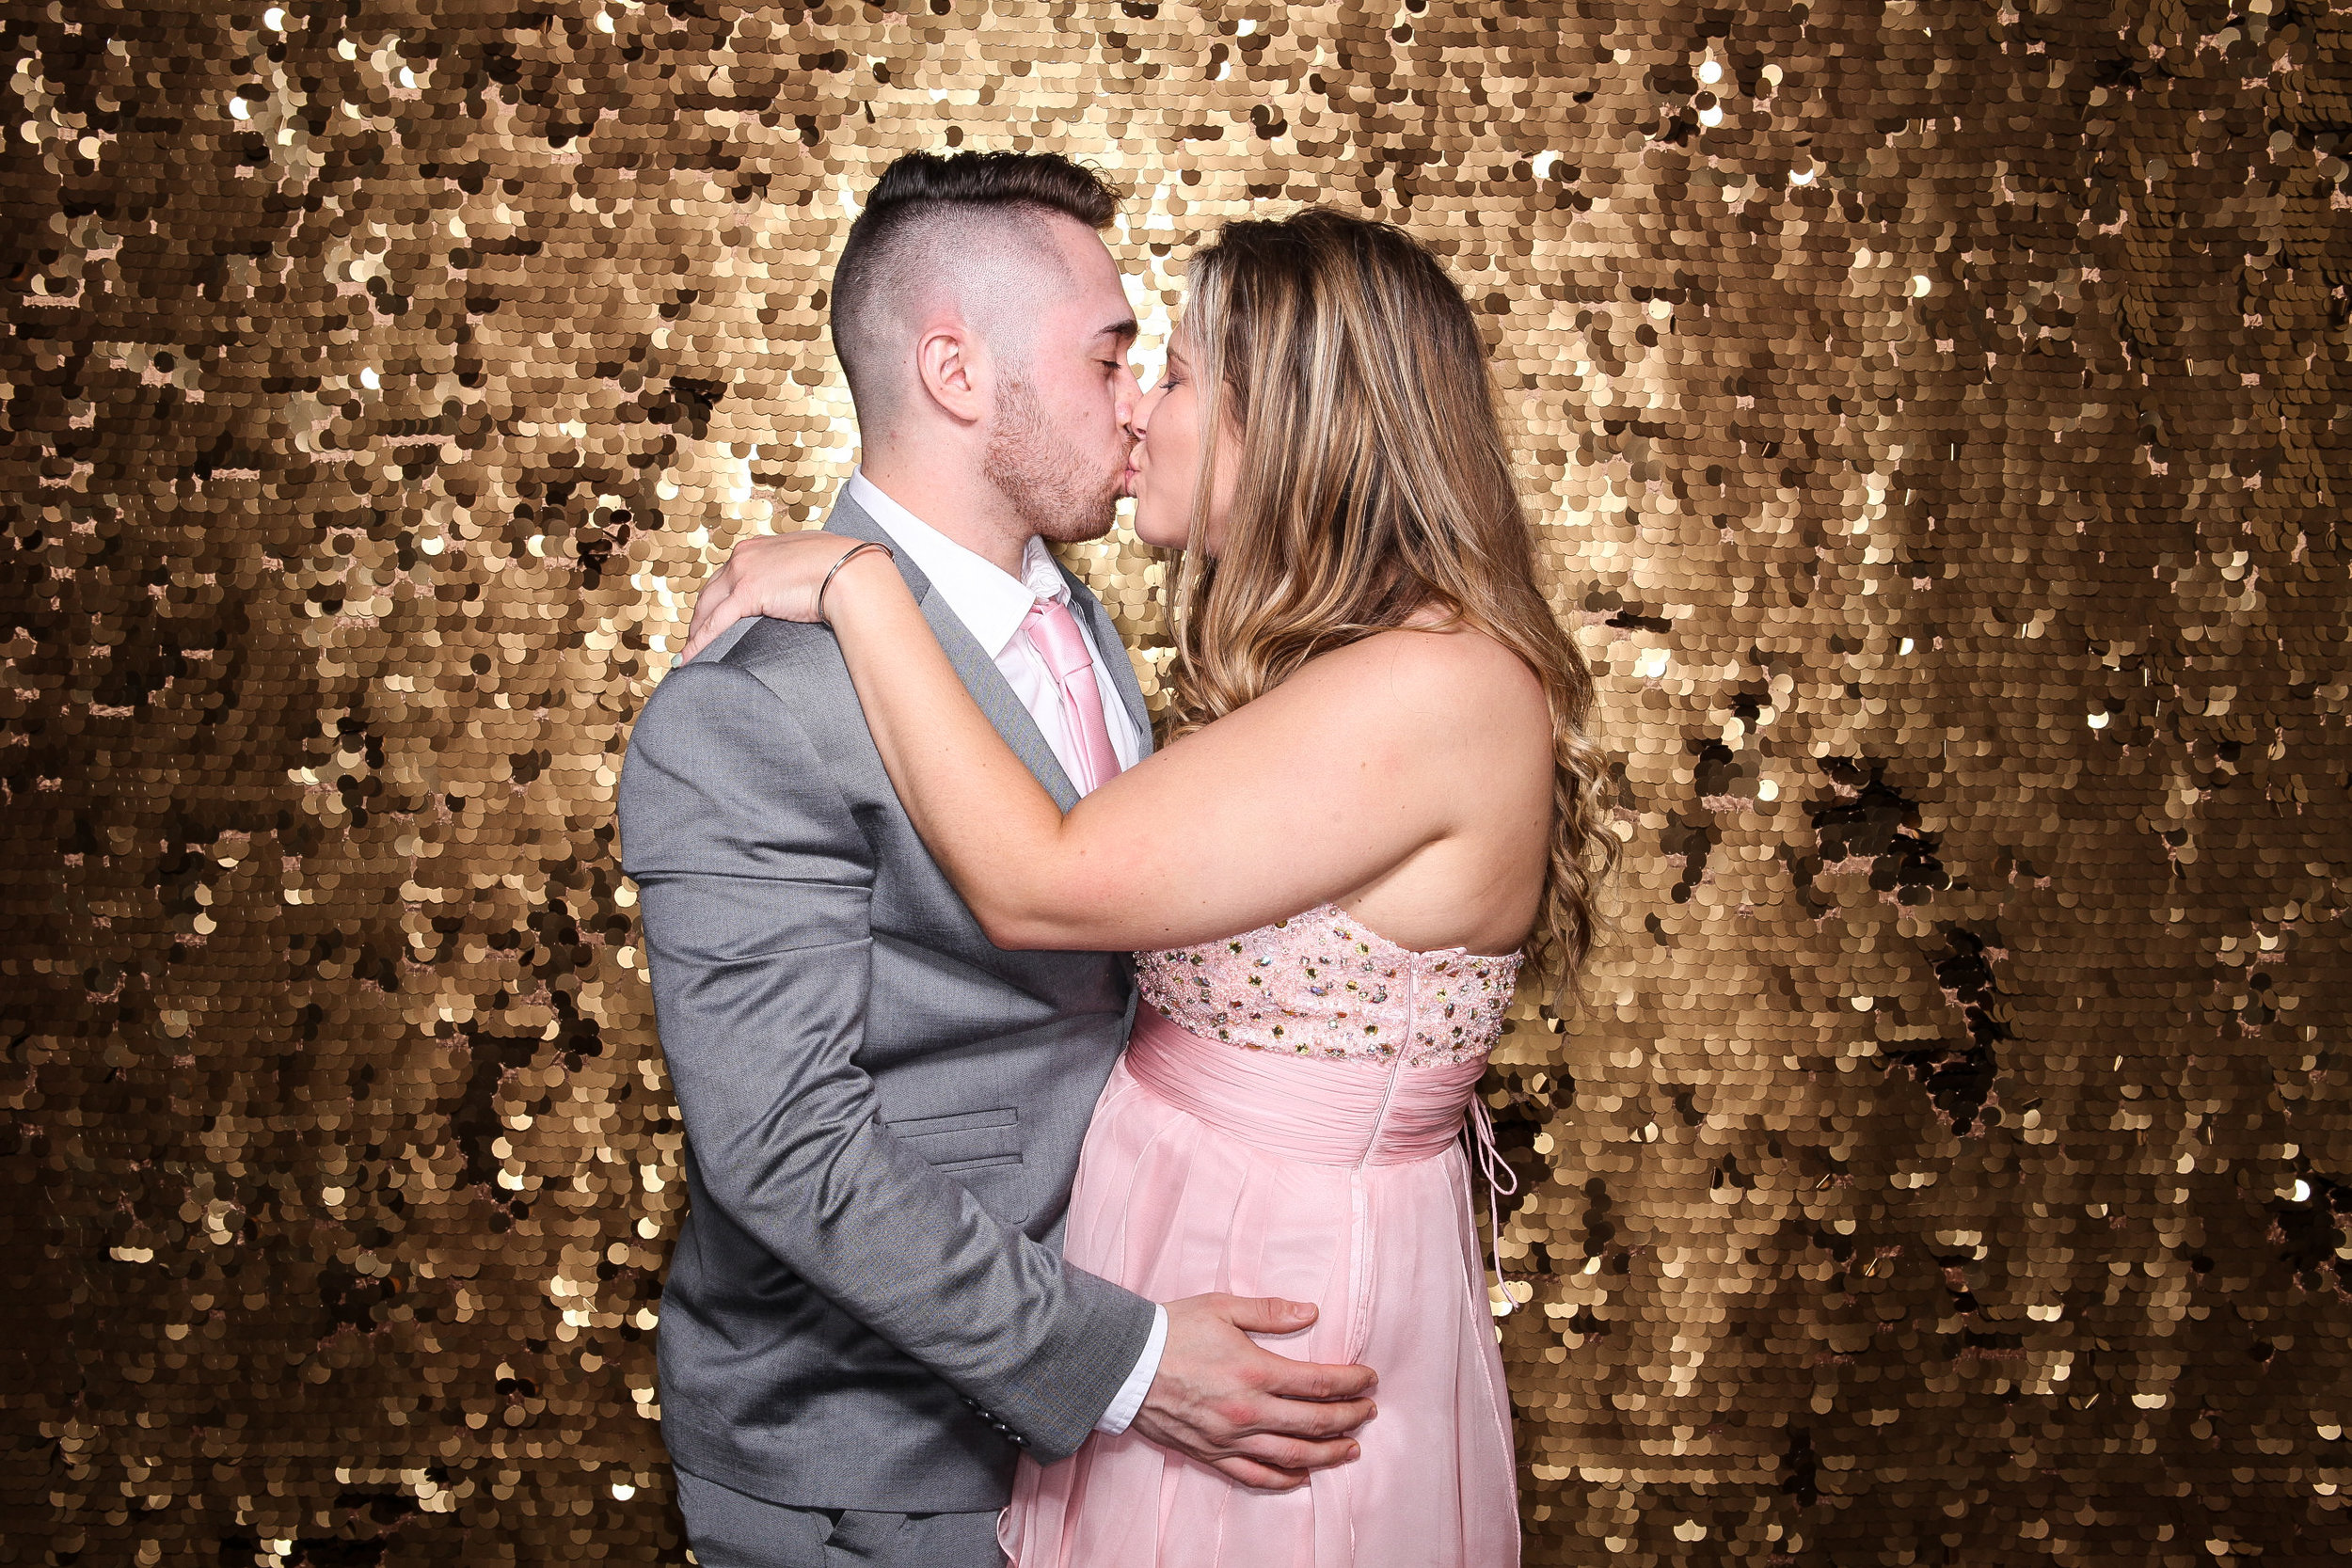 20190503_Adelphi_Senior_Formal-324.jpg